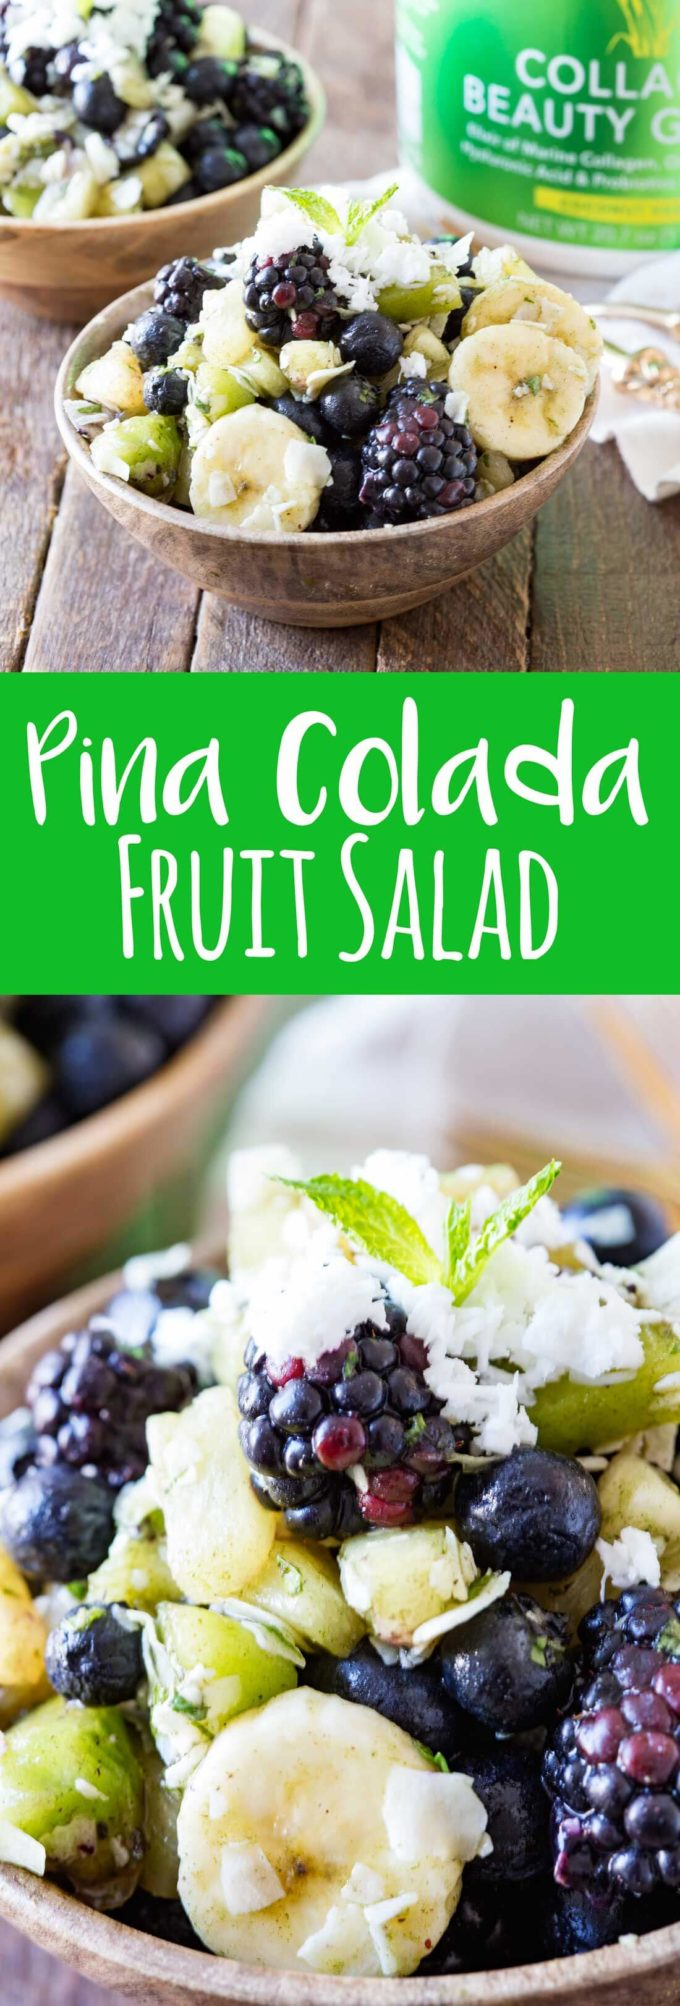 Pina Colada Fruit Salad is a refreshing, healthy twist on a classic fruit salad with a delicious beauty green dressing that offers additional health benefits.